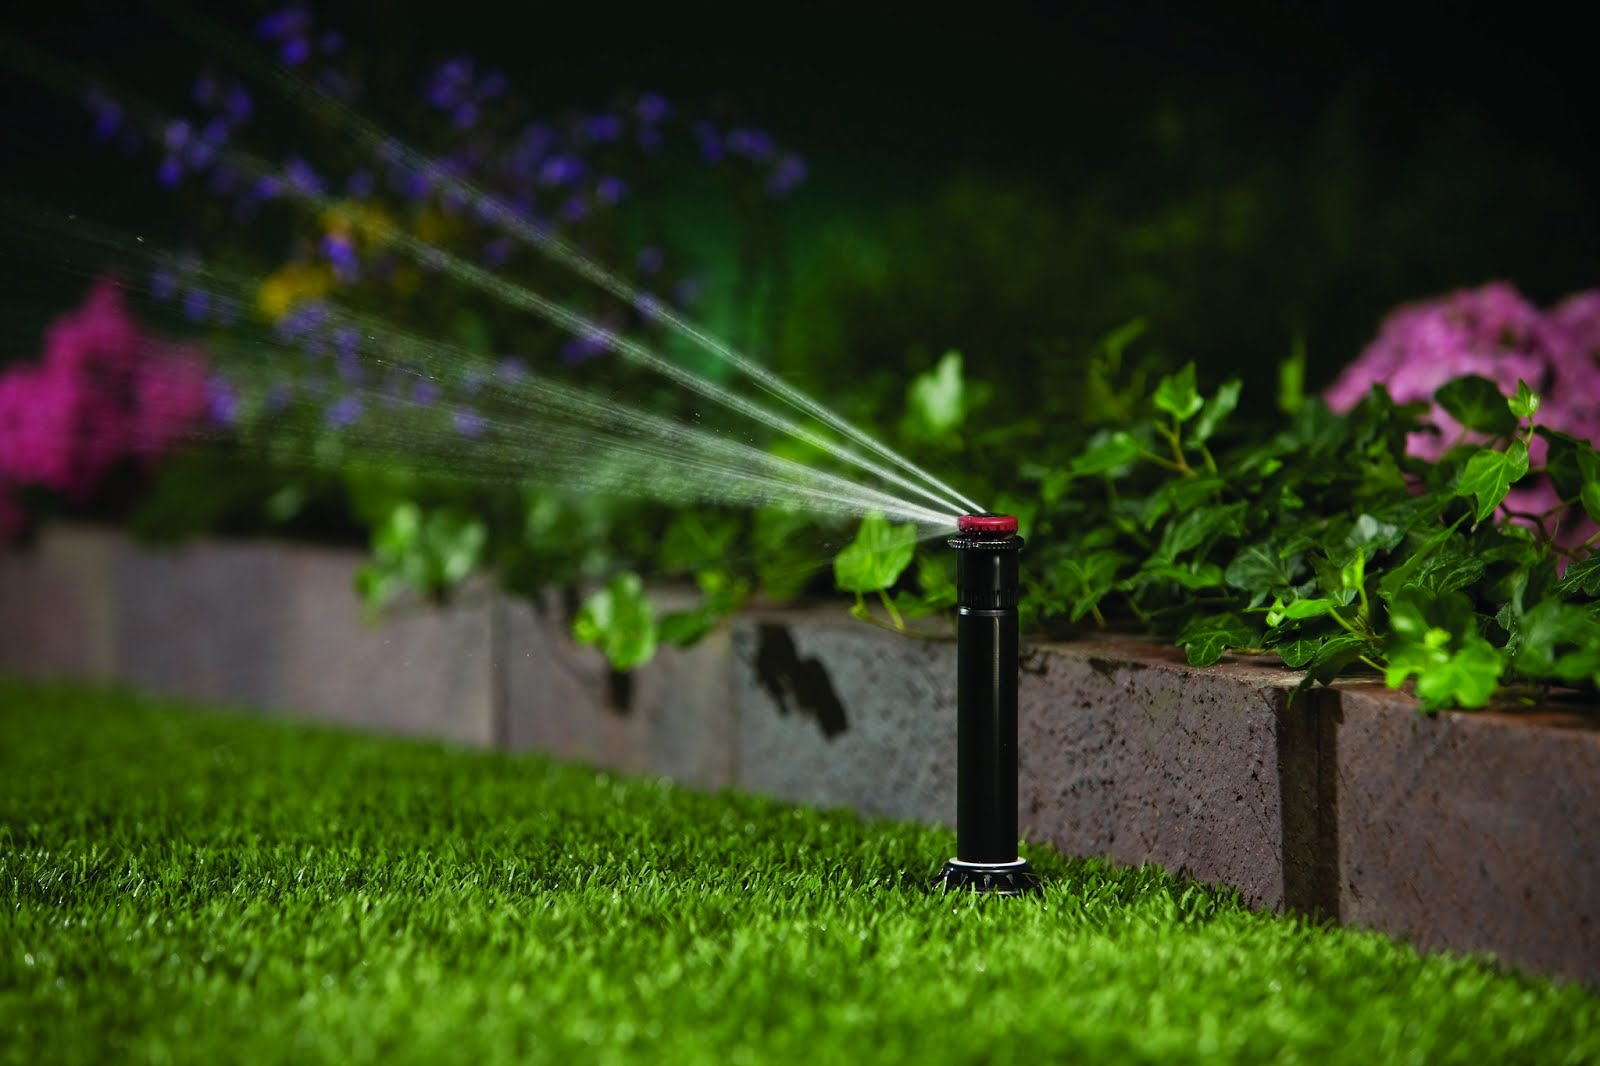 Sprinkler Services-Denton TX Professional Landscapers & Outdoor Living Designs-We offer Landscape Design, Outdoor Patios & Pergolas, Outdoor Living Spaces, Stonescapes, Residential & Commercial Landscaping, Irrigation Installation & Repairs, Drainage Systems, Landscape Lighting, Outdoor Living Spaces, Tree Service, Lawn Service, and more.